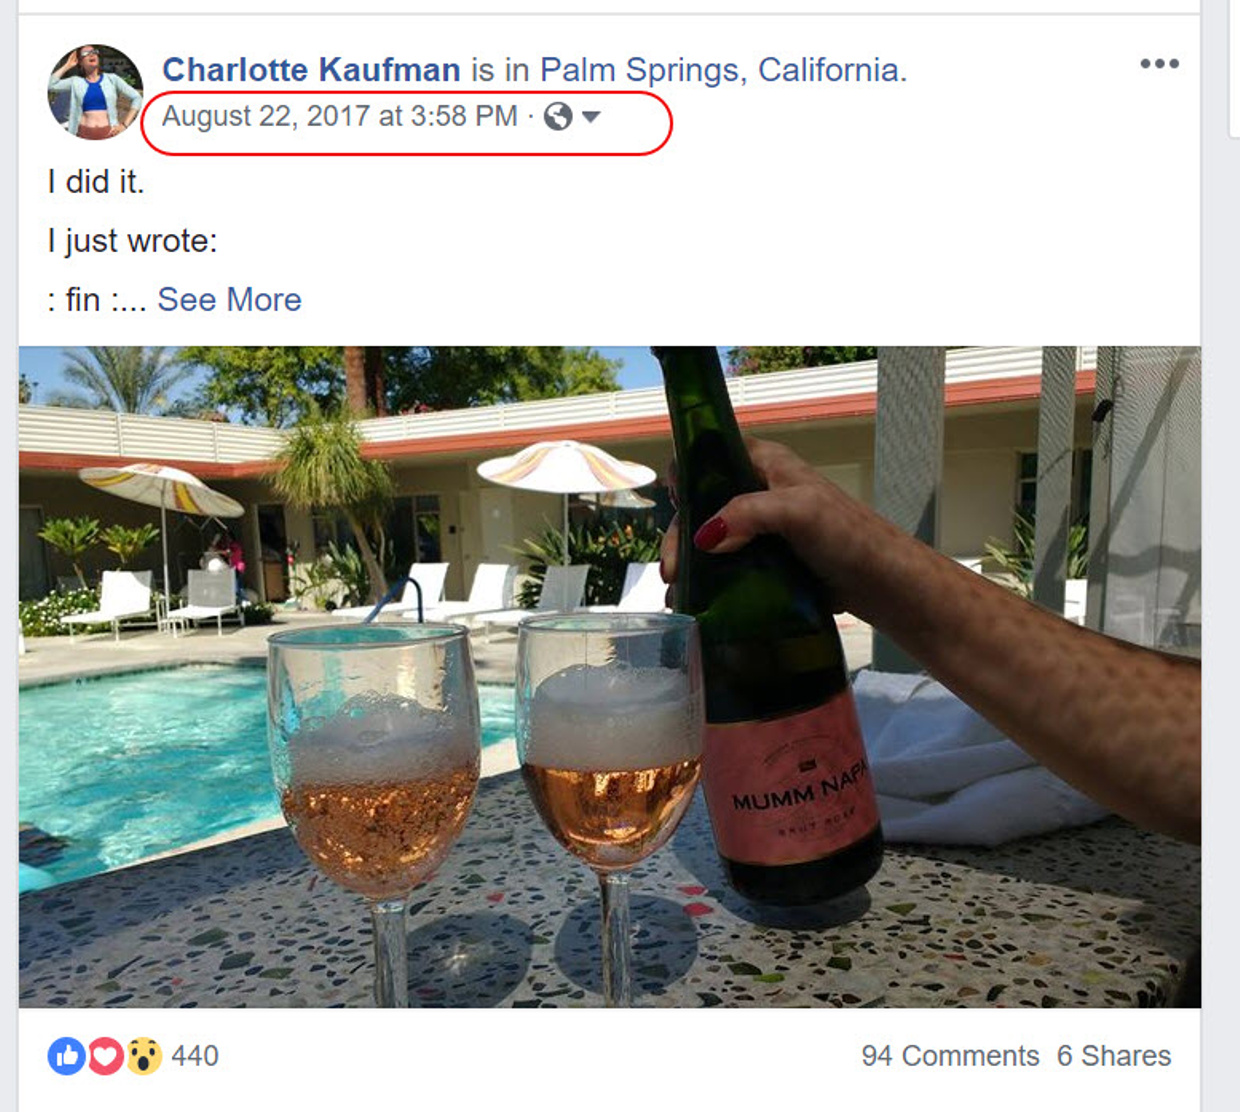 Image Description: A screenshot of Charlotte Kaufman's Facebook feed from August 22, 2017 showing a woman's hand pouring two glasses of sparkling rosé wine with a pool and Palm Springs hotel in the background.